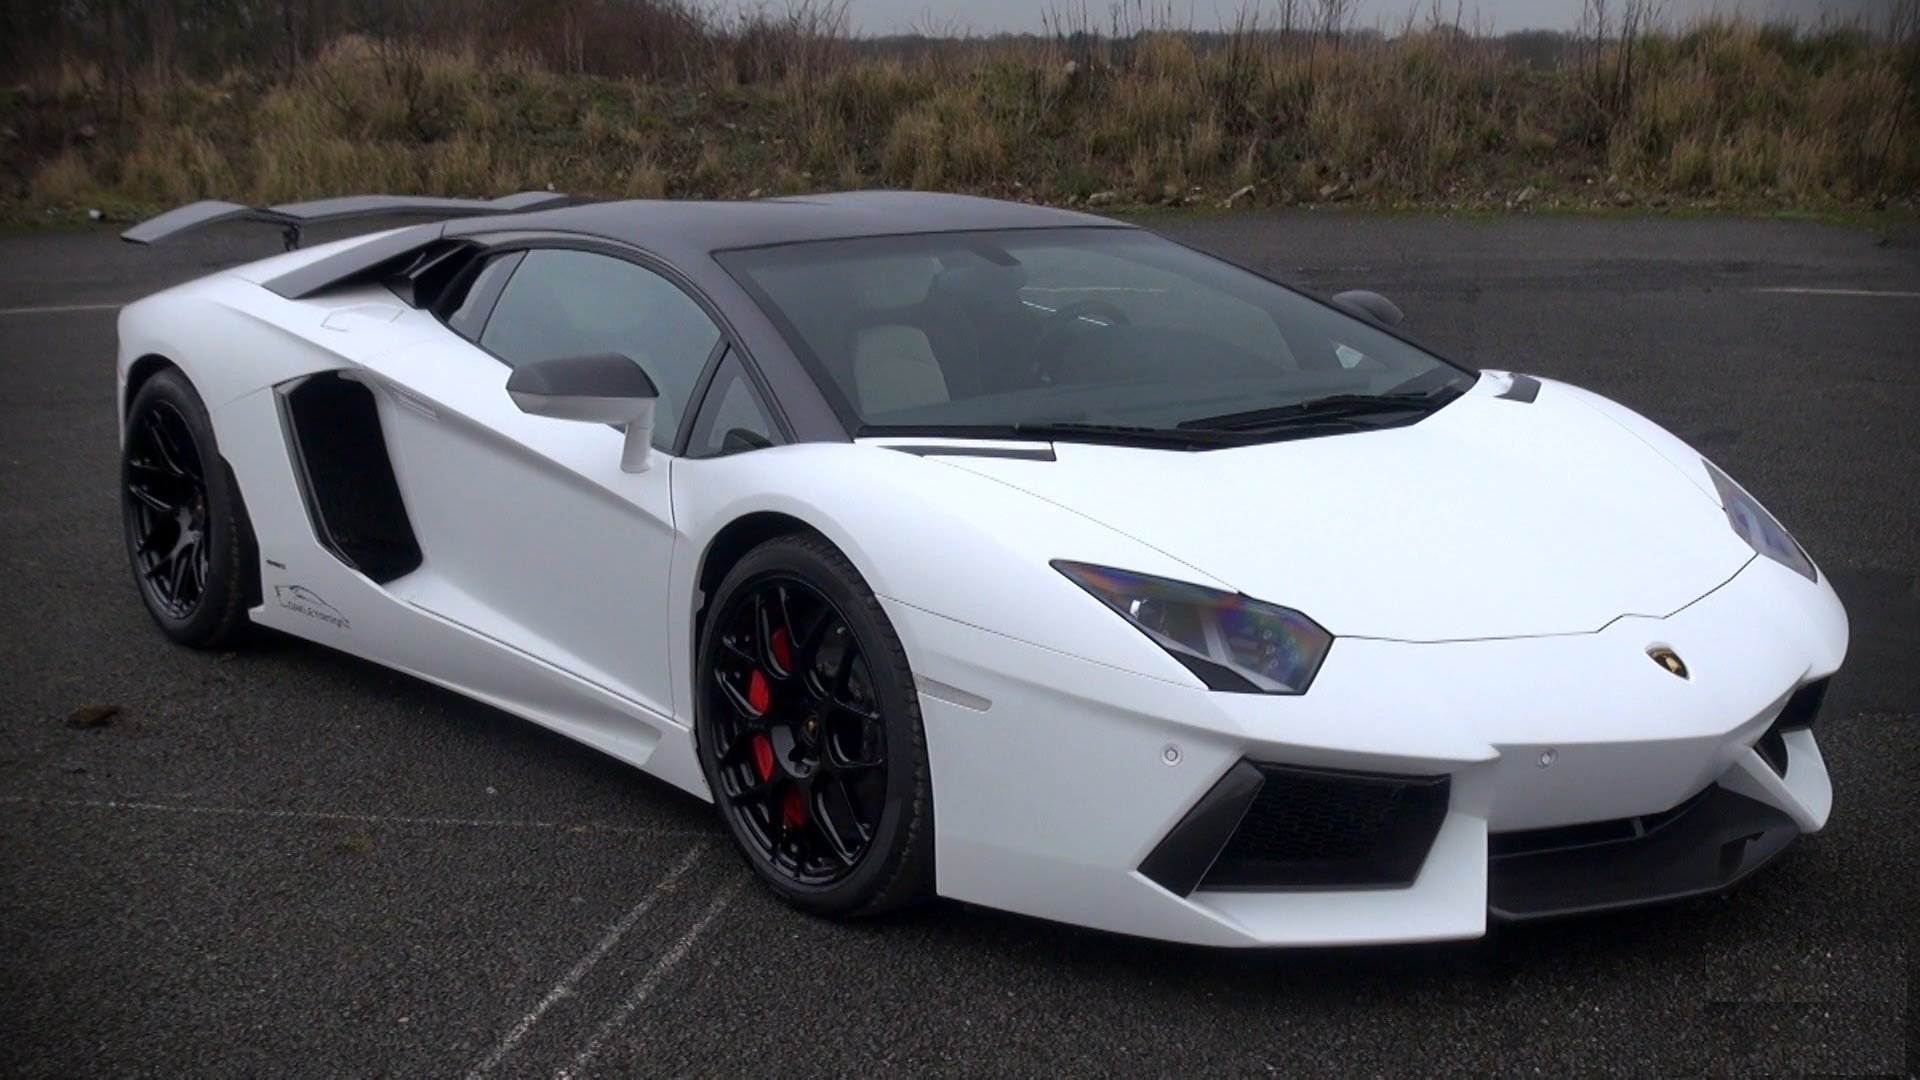 Lamborghini Aventador Wallpaper 1080p HD Resolutions Car 1920x1080